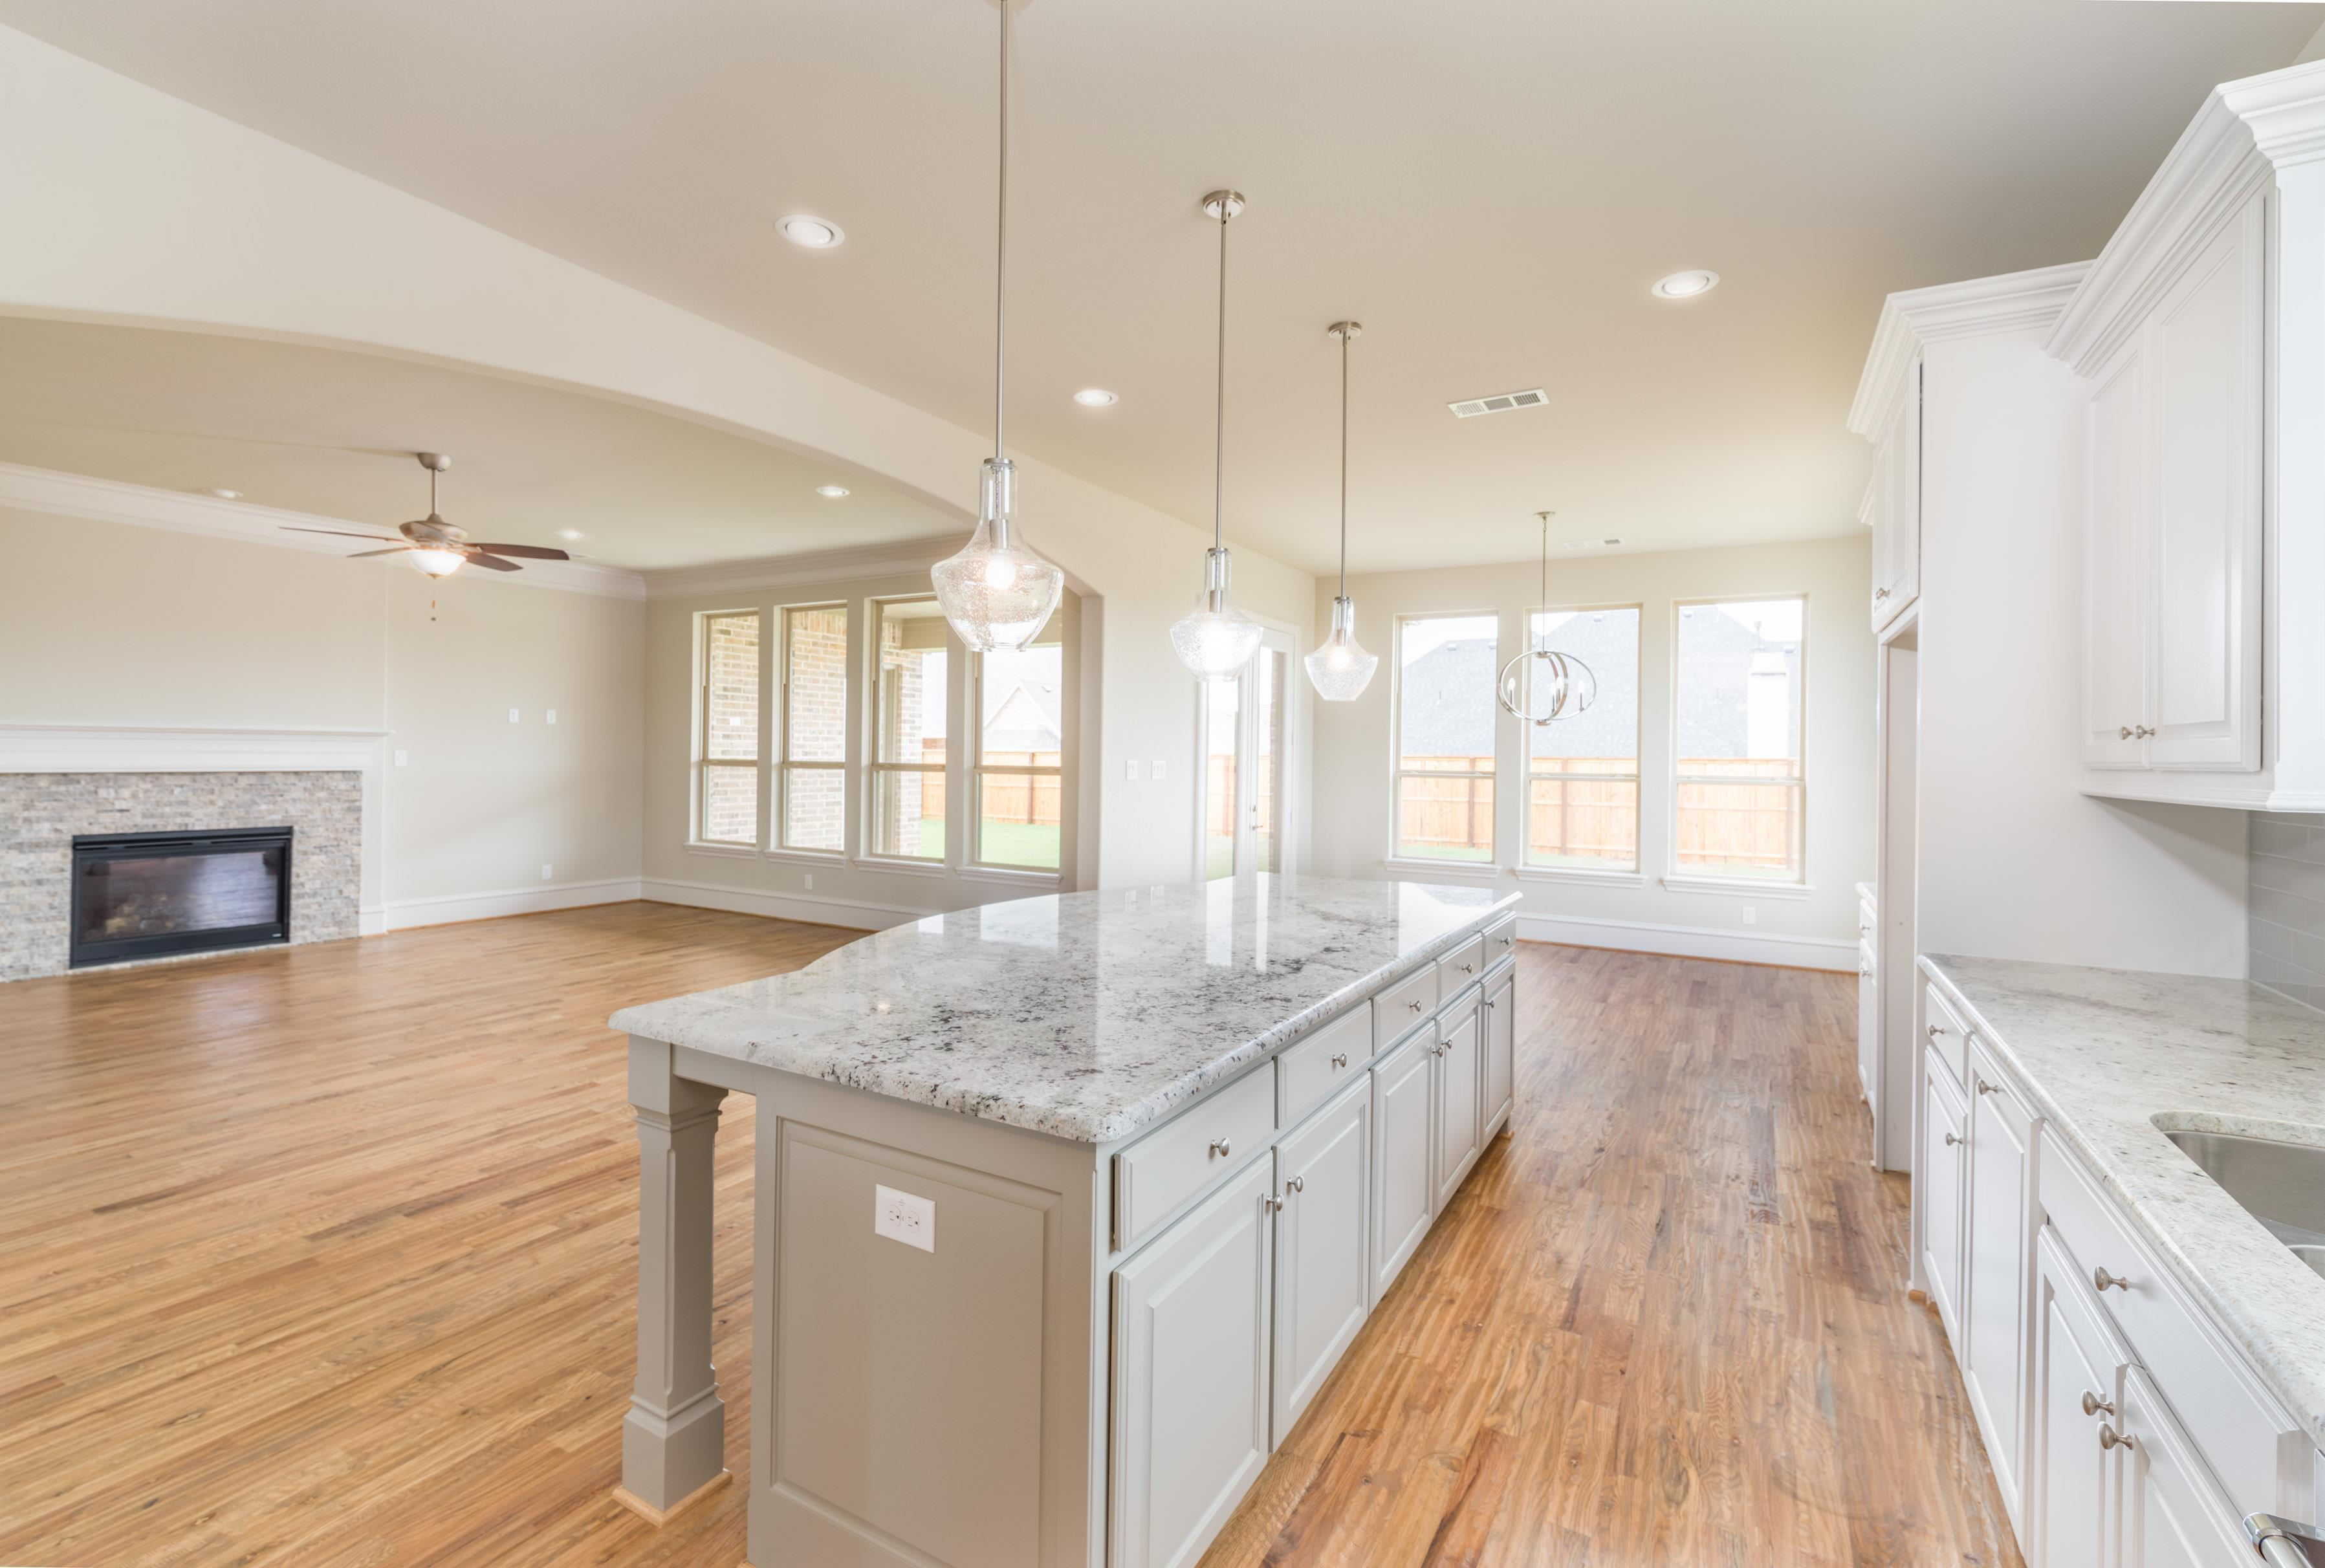 Kitchen featured in the Concept 4258 By Newport Light Farms in Dallas, TX